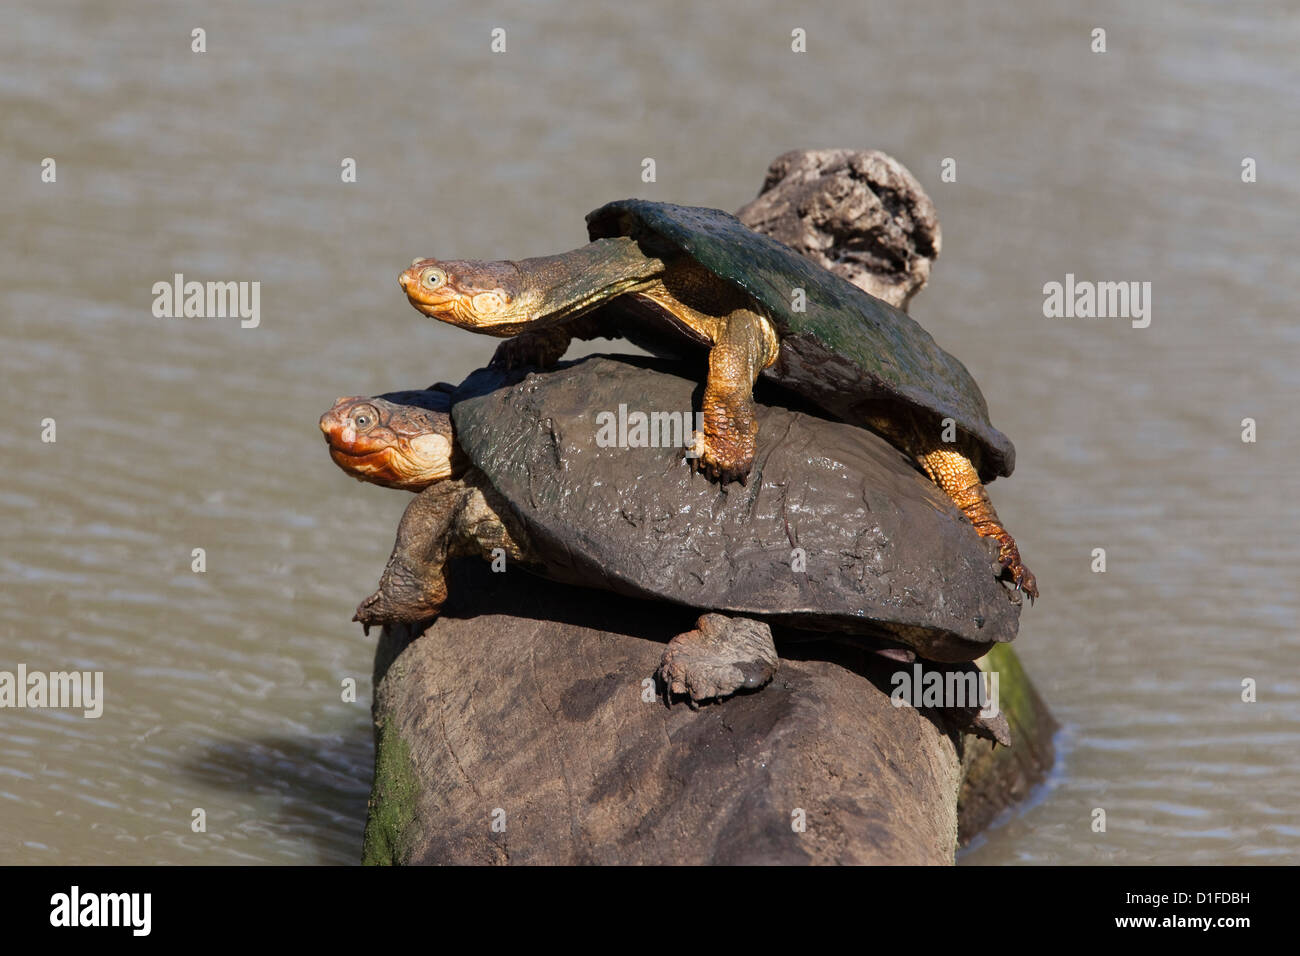 Marsh terrapin (African helmeted turtle) (Pelomedusa subrufa) stacked up on log, Mkhuze game reserve, South Africa, - Stock Image